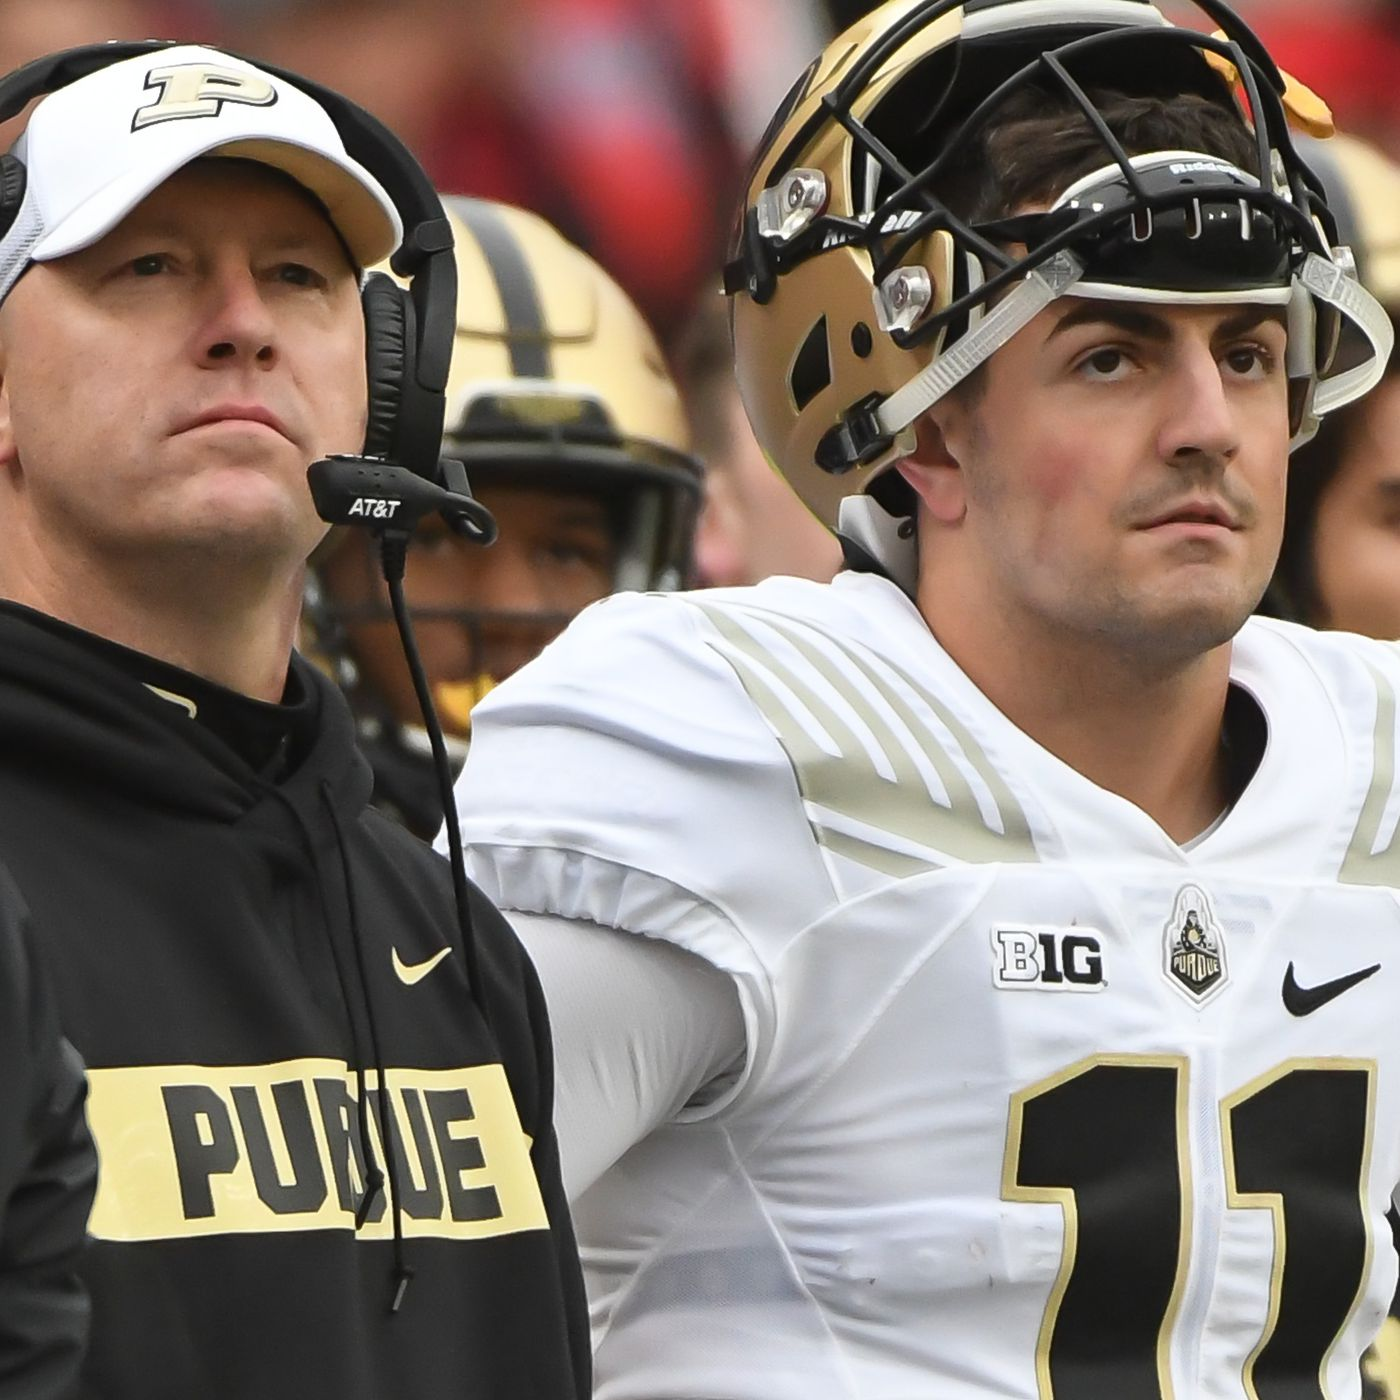 RoWINg to Purdue - Opponent Preview